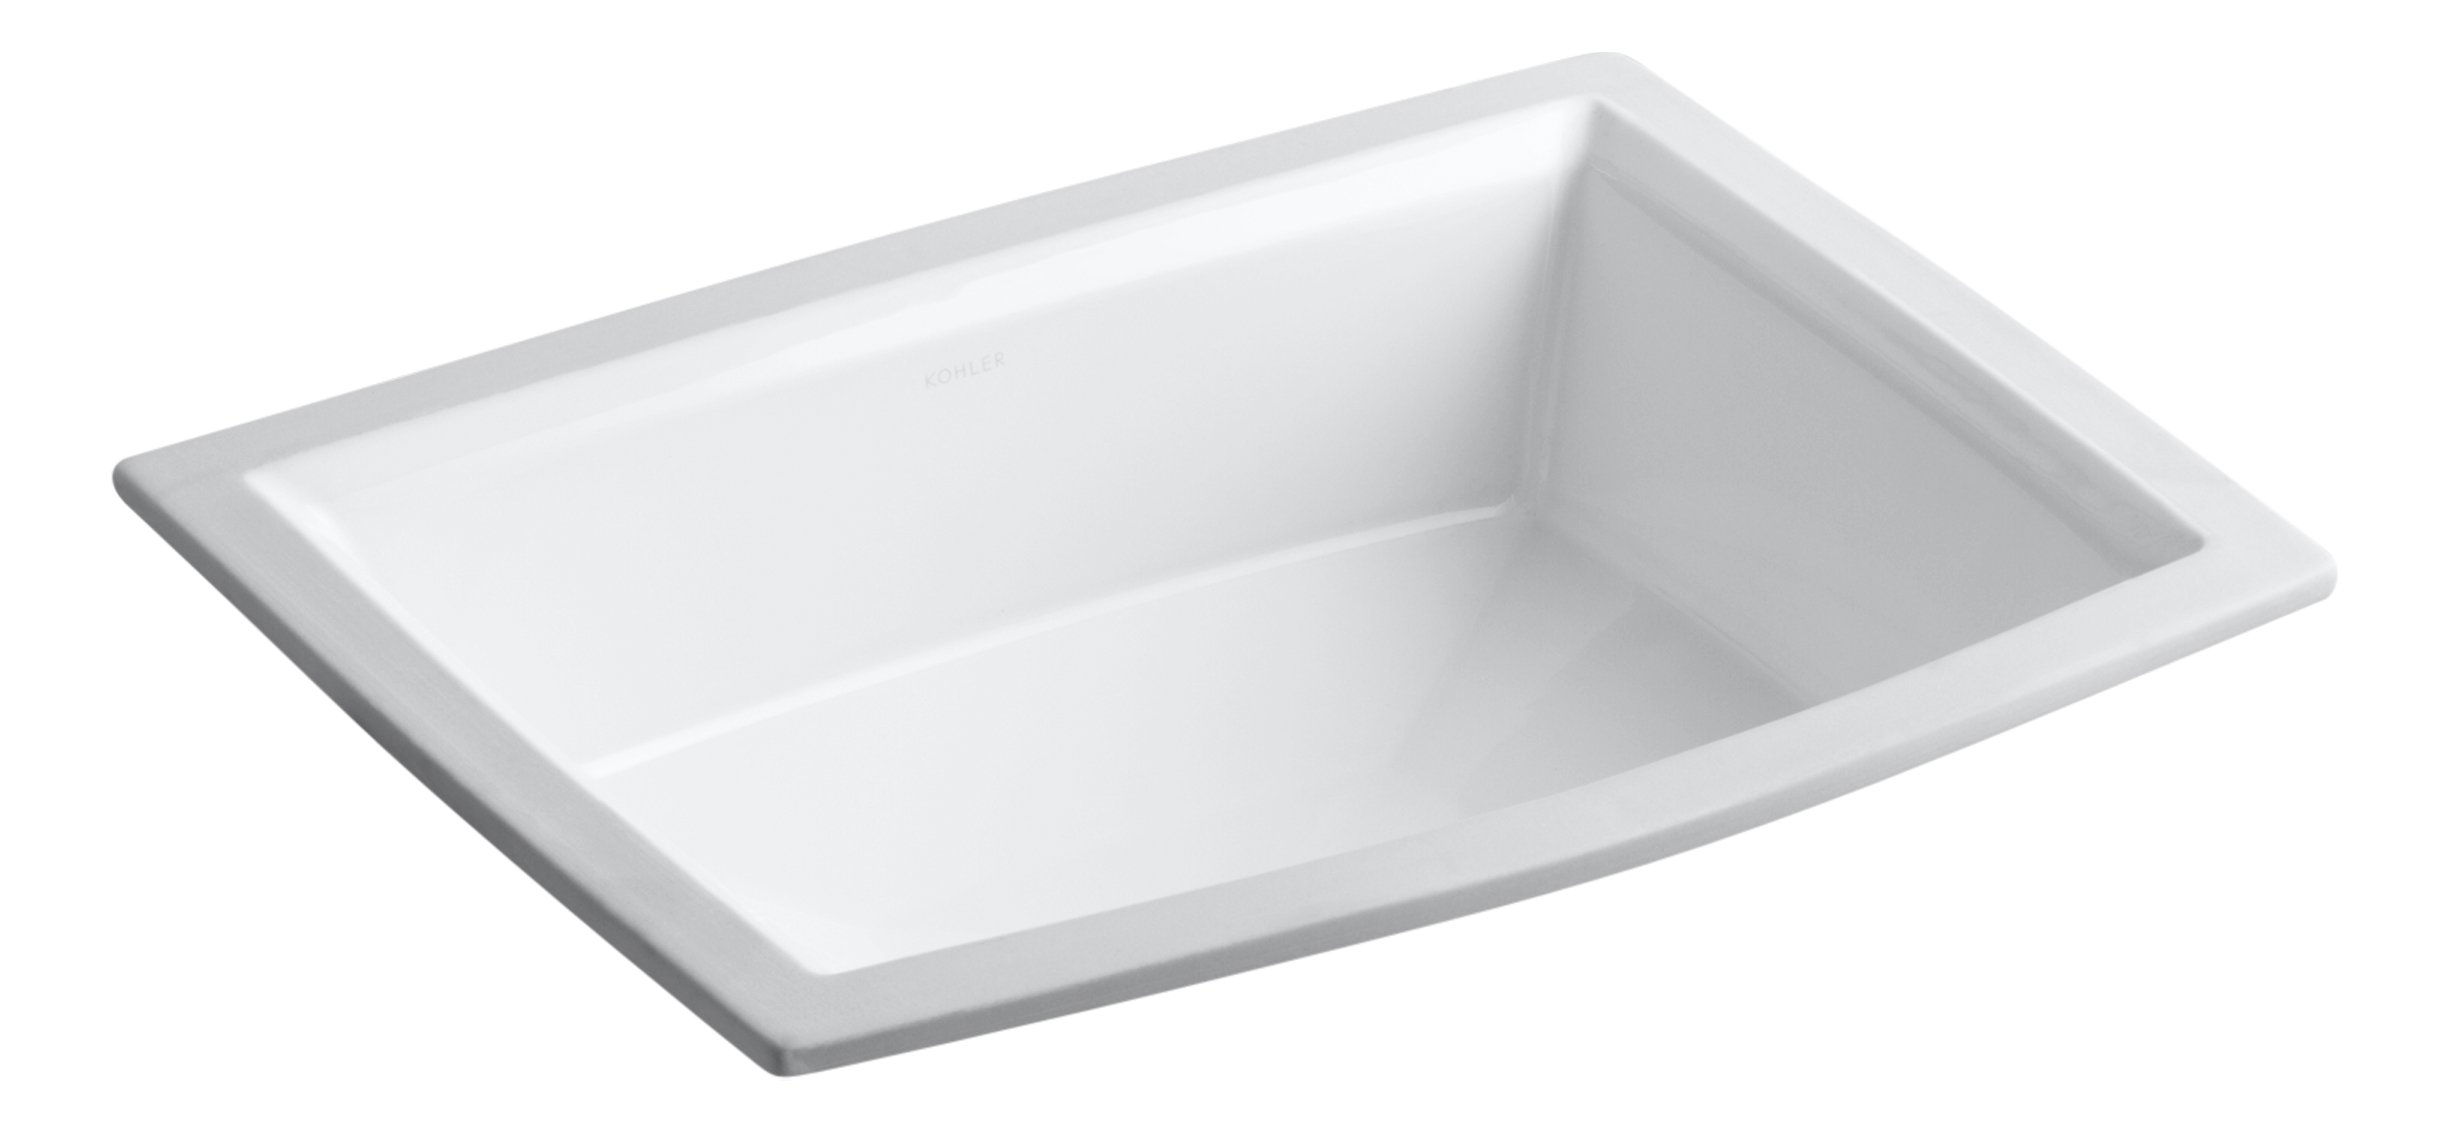 KOHLER K-2355-0 Archer Undercounter Bathroom Sink, White by Kohler